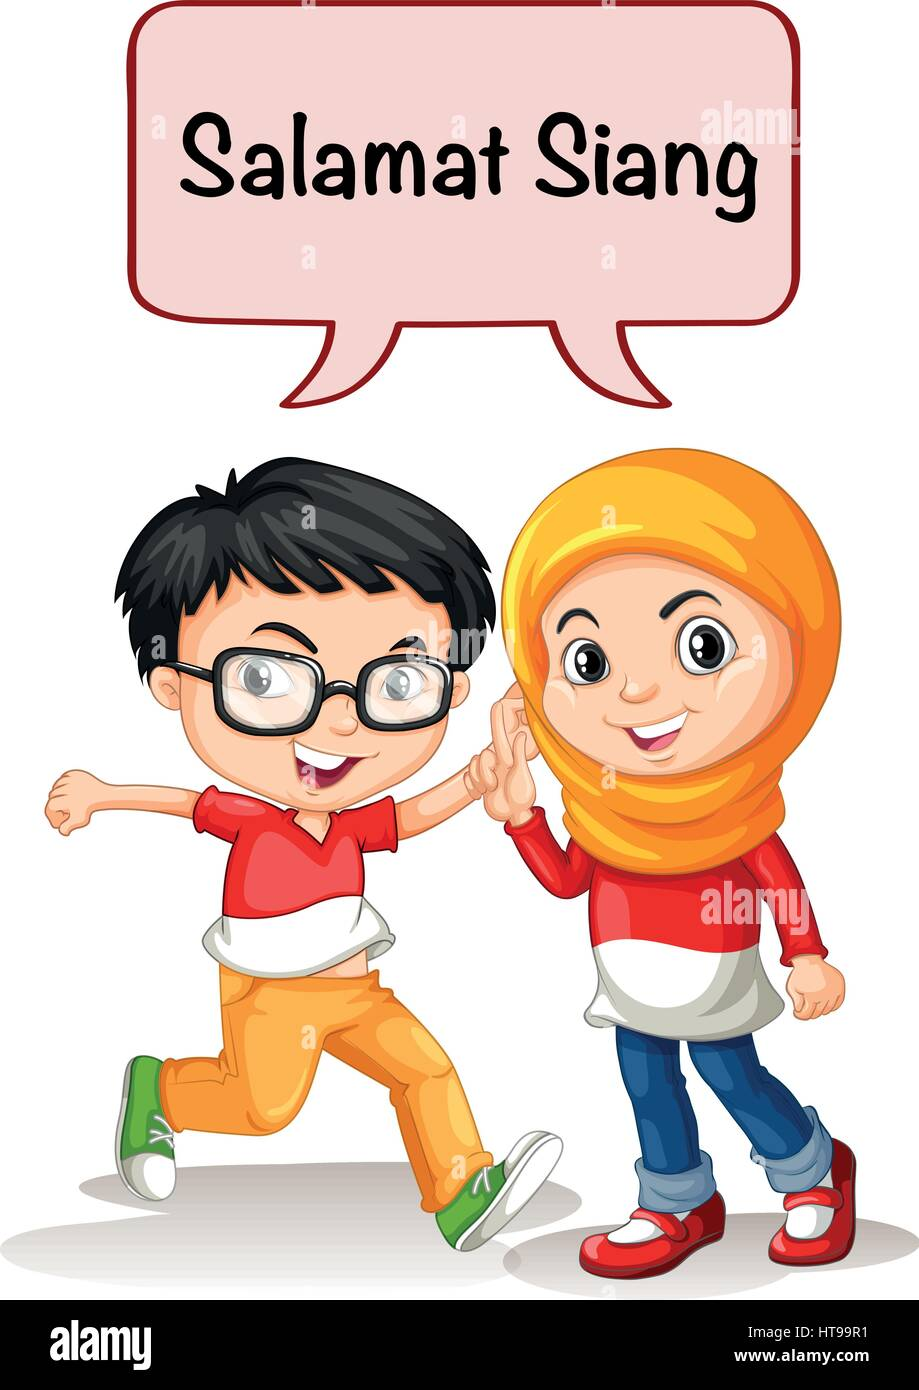 Boy and girl greeting in indonesian language illustration stock boy and girl greeting in indonesian language illustration m4hsunfo